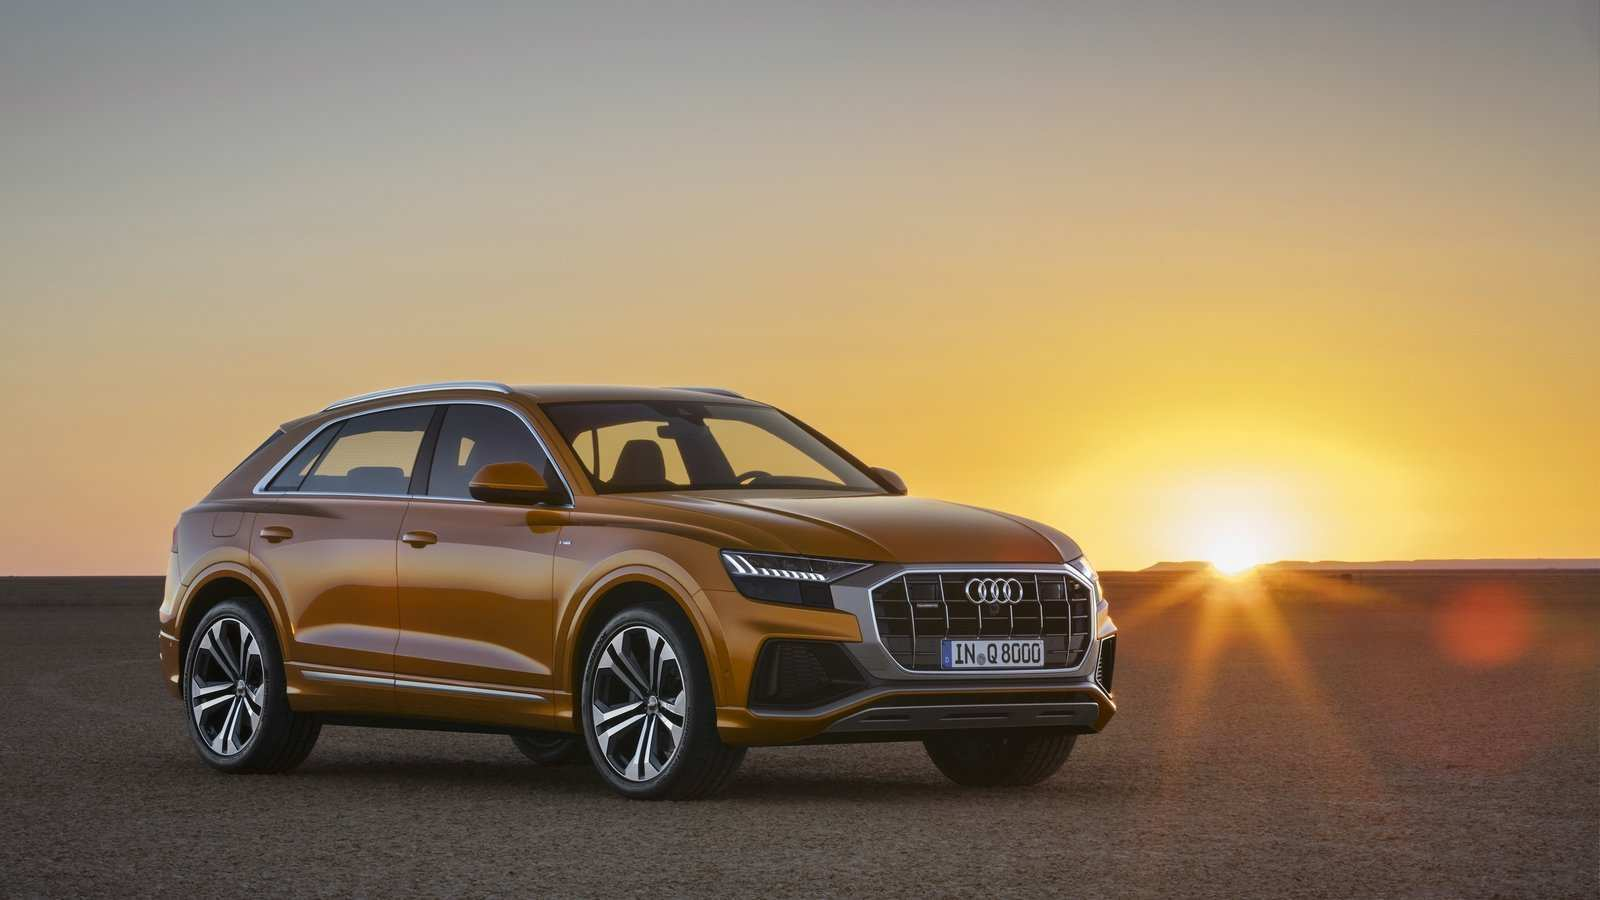 60 Best Review 2020 Audi Q8 Price Research New for 2020 Audi Q8 Price